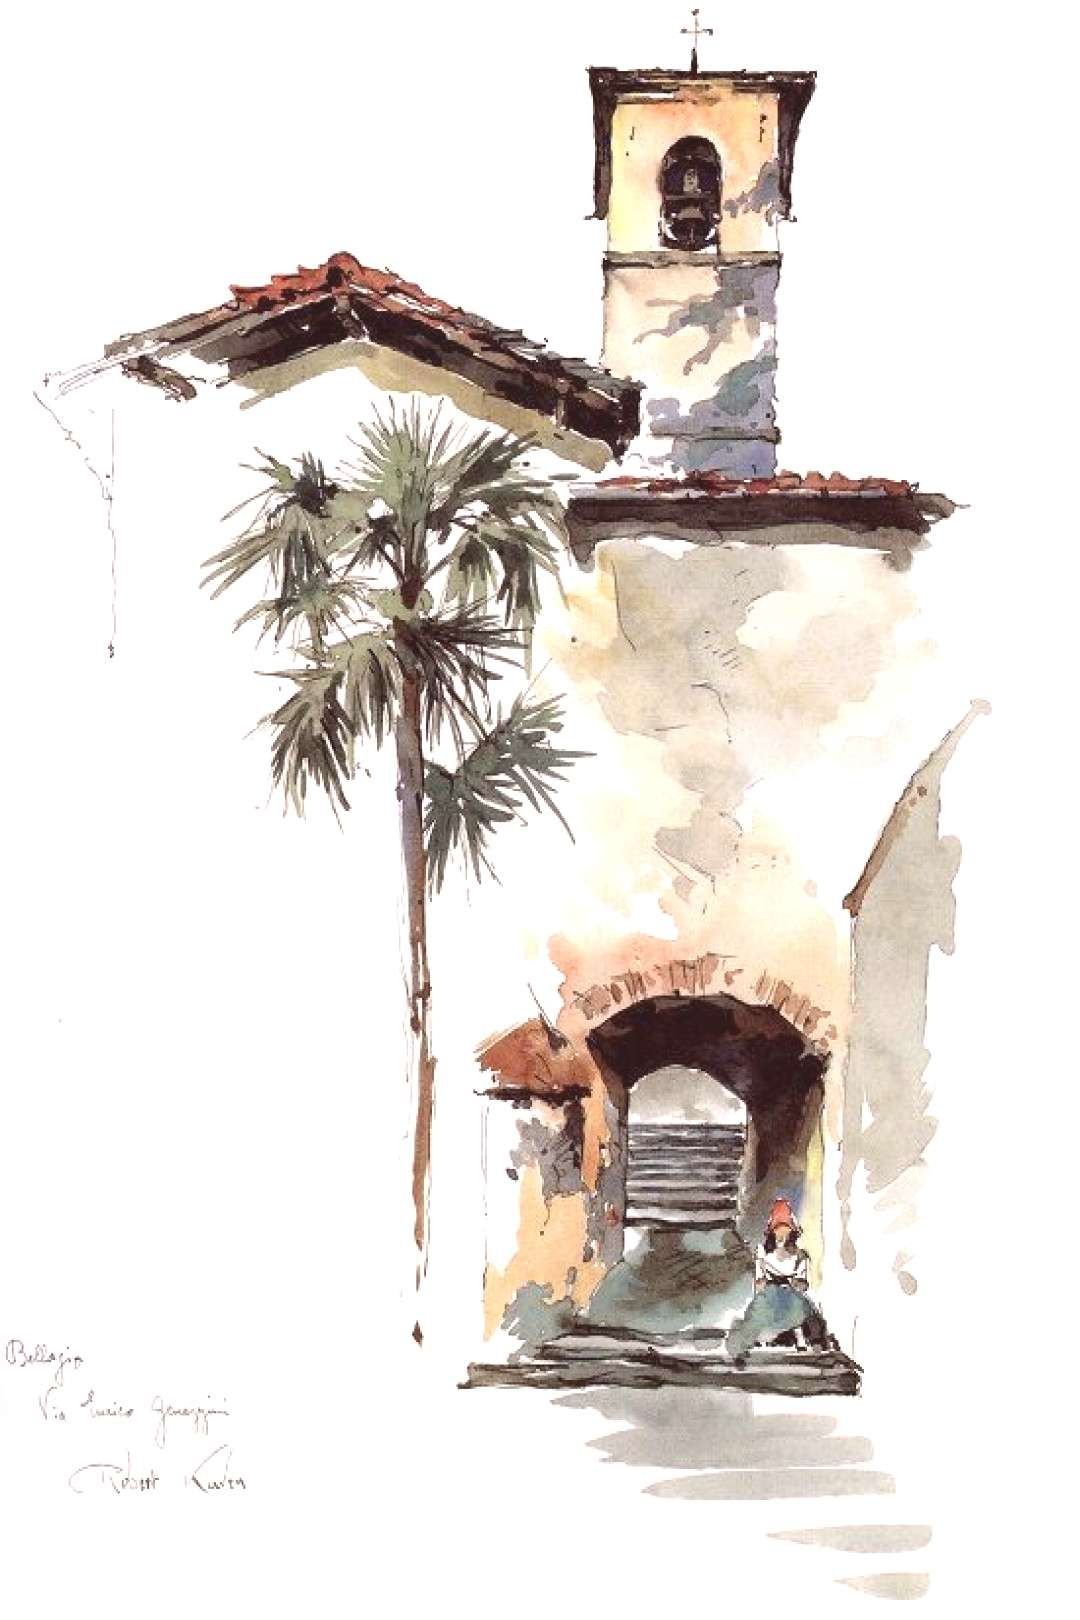 Very simple watercolor drawing - the picture looks very 2D - not much contouring. - Artists   Trend